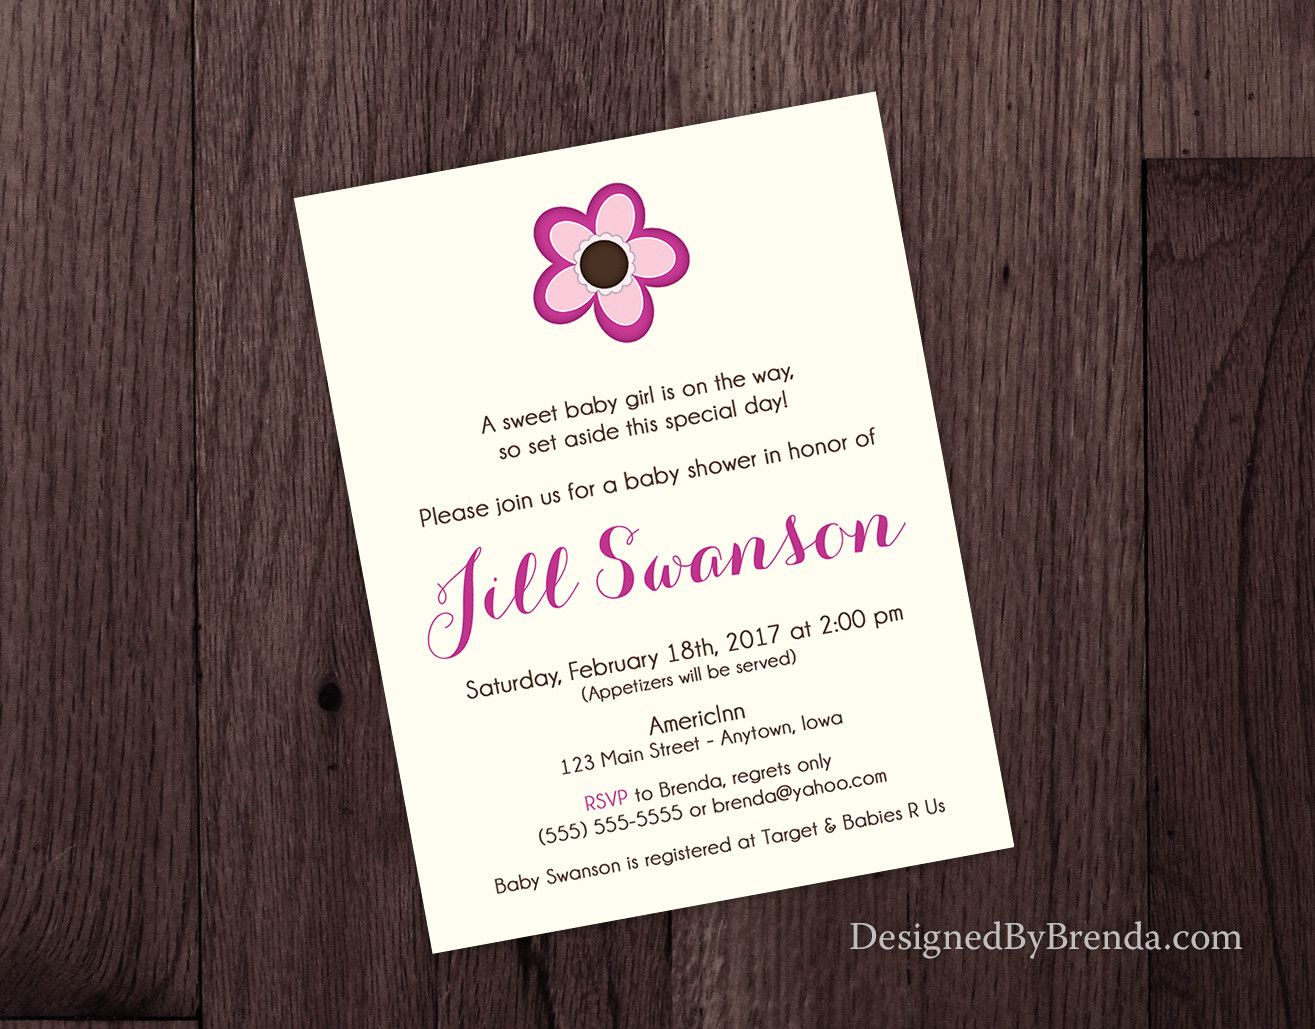 jungle theme baby shower invitation sayings%0A Baby Shower Invitation with Pink Flower  Simple Layout